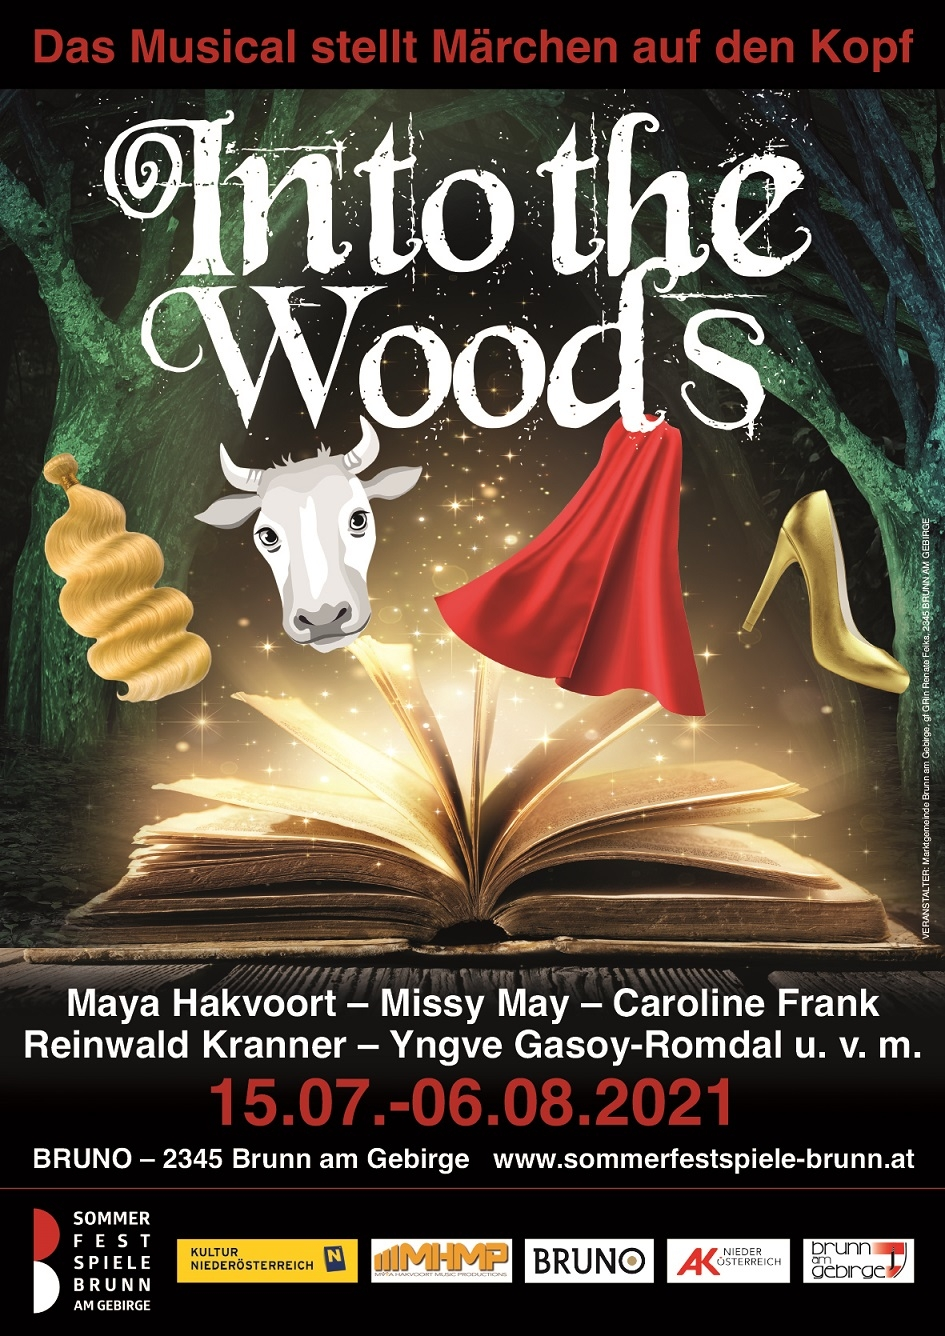 Into the Woods - Sommerfestspiele Brunn am Gebirge 2021